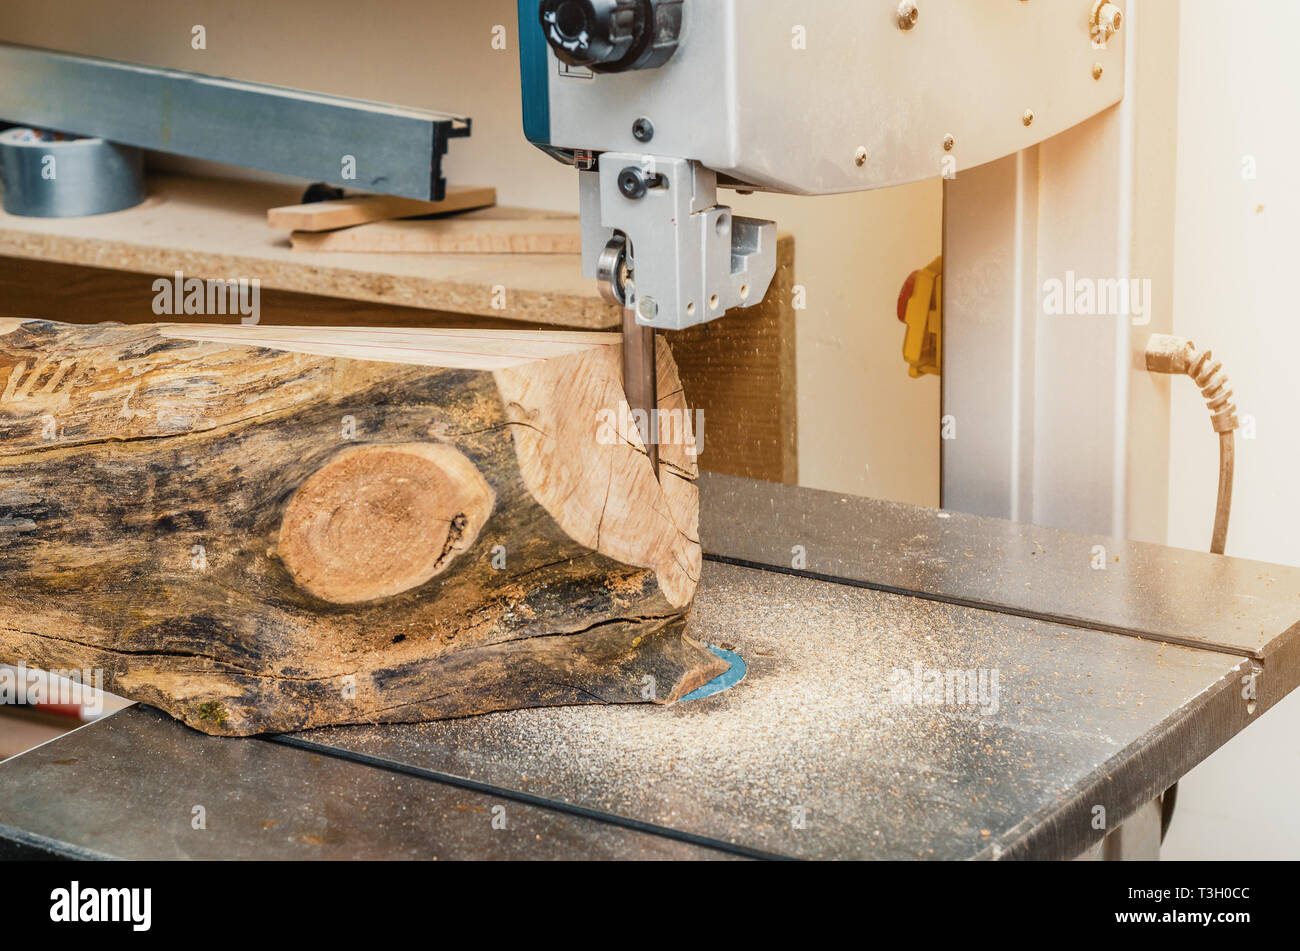 band saw, the machine cuts the log on boards. woodworking